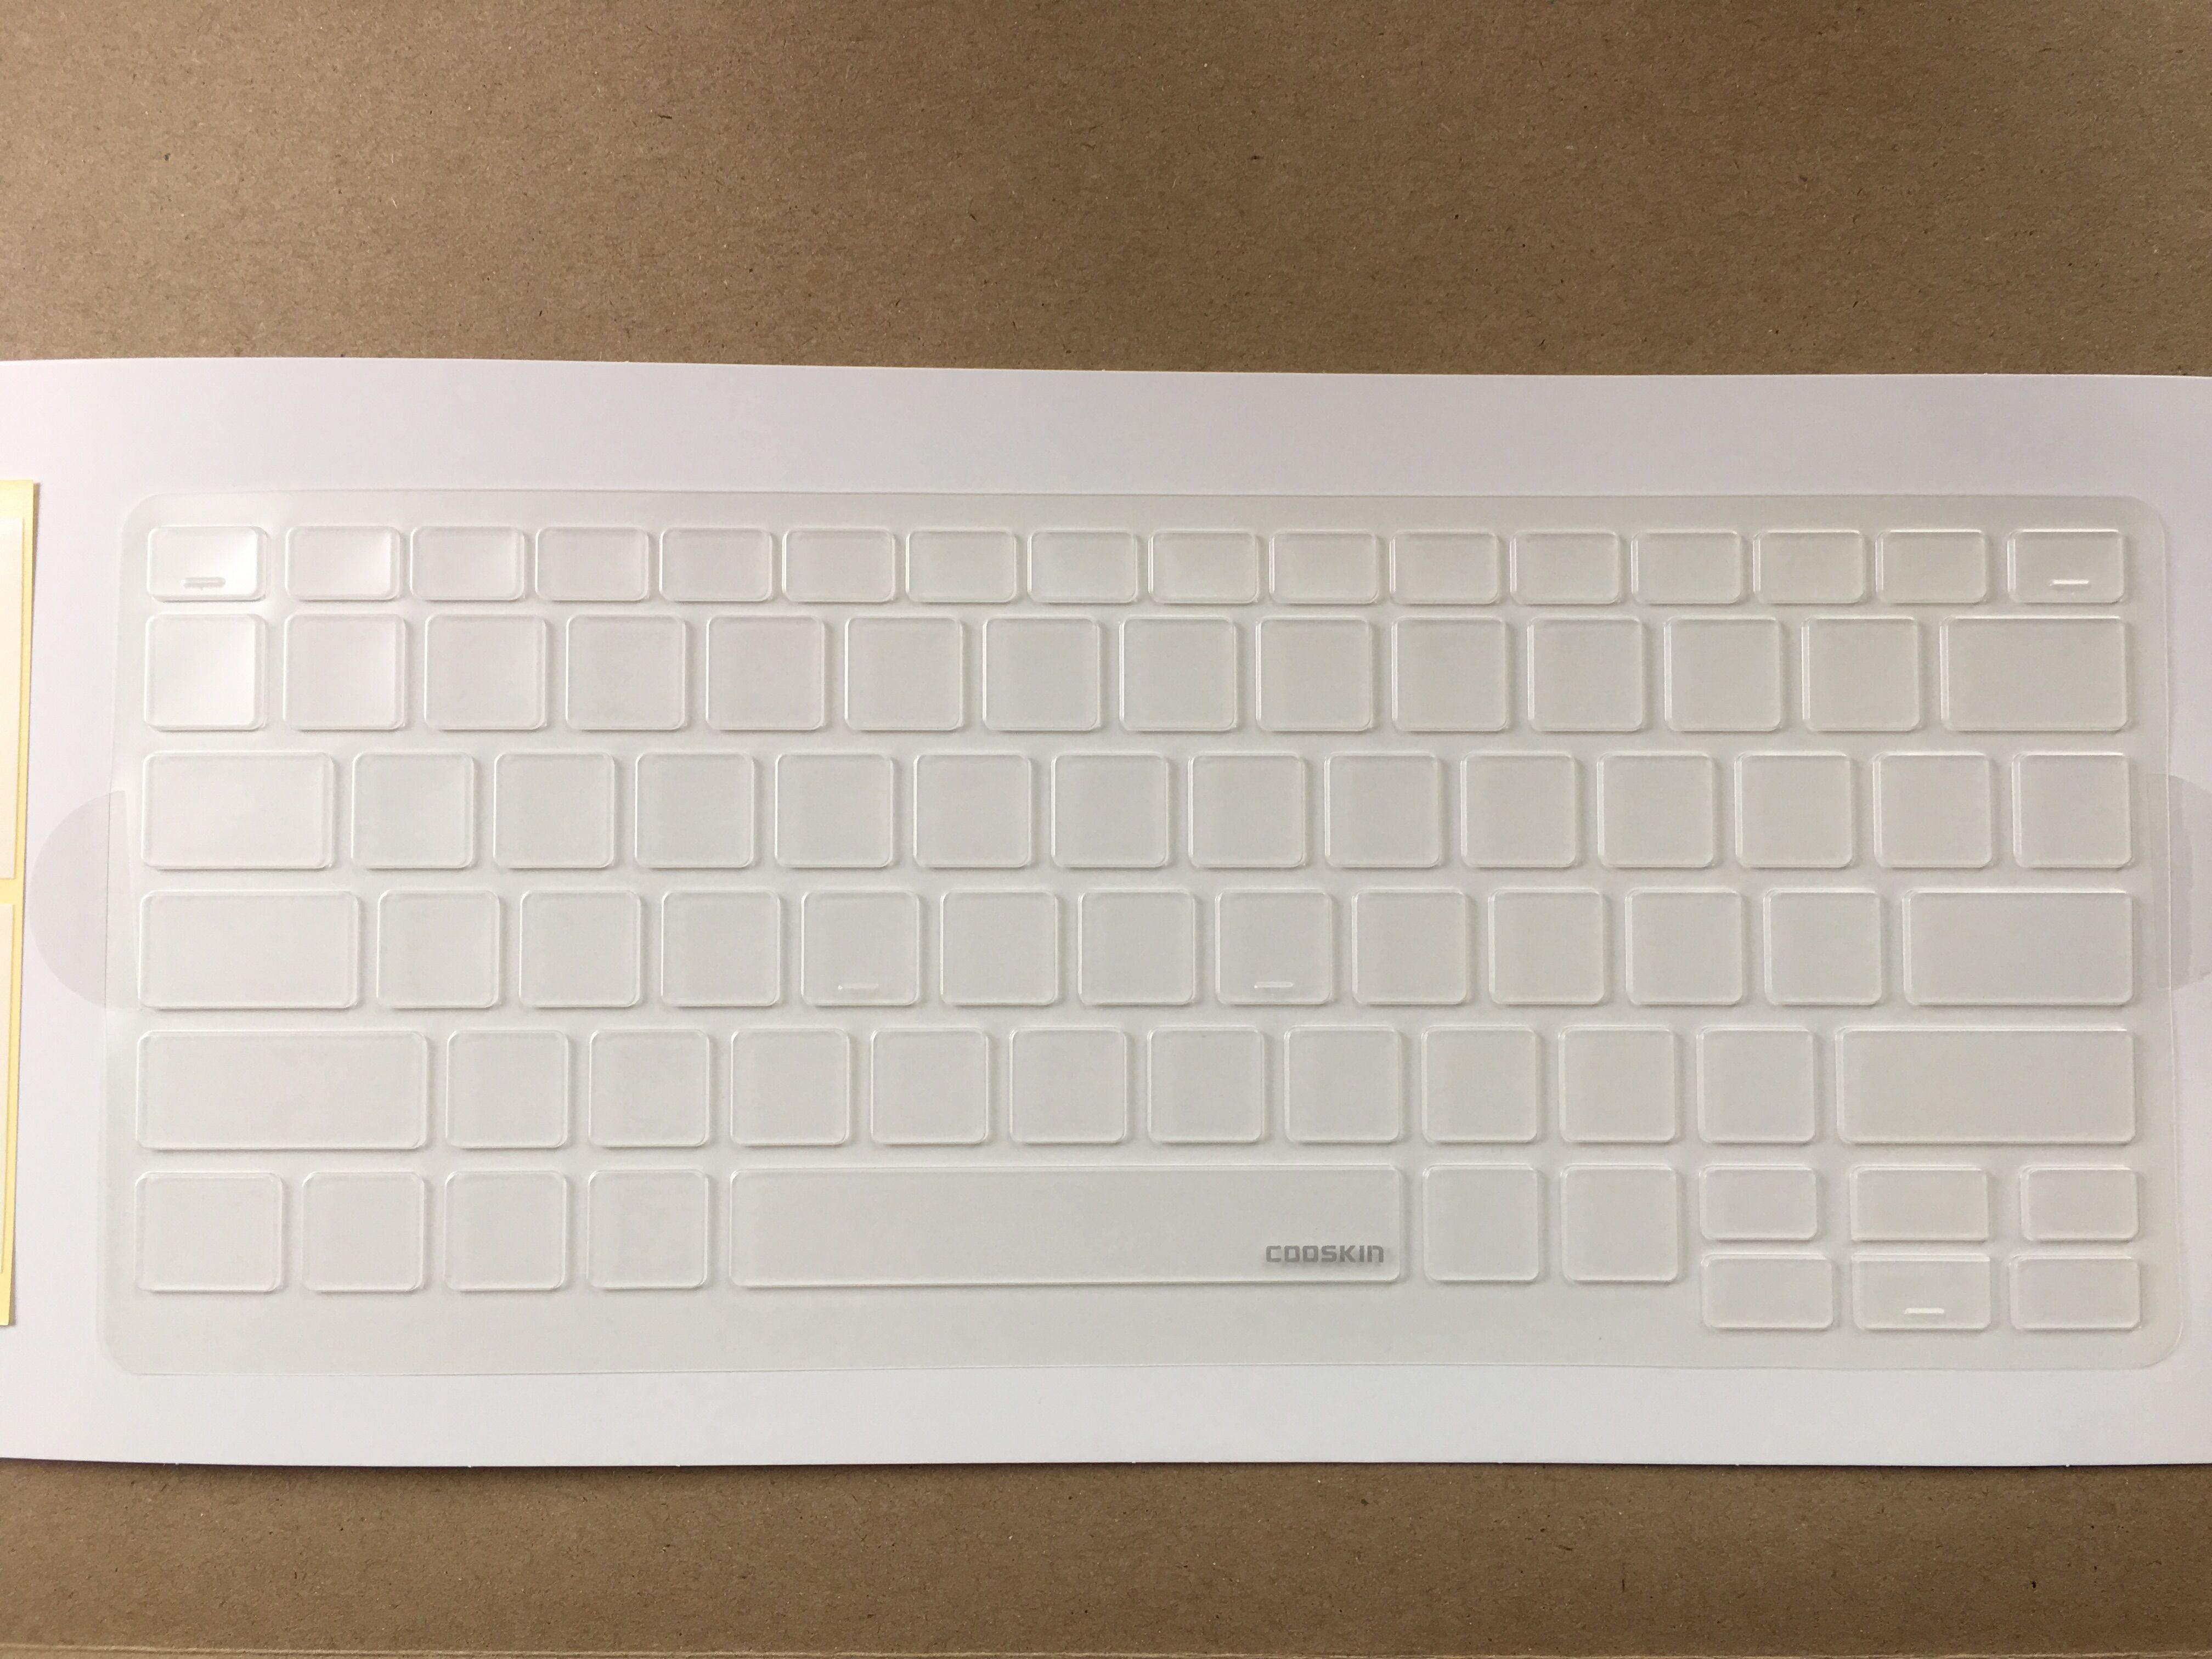 Clear Tpu <font><b>Keyboard</b></font> Cover For <font><b>Dell</b></font> <font><b>Latitude</b></font> 7490 7480 E7450 E7470 E7350 E5450 <font><b>E5470</b></font> E5480 E3350 E7490 without Pointing image